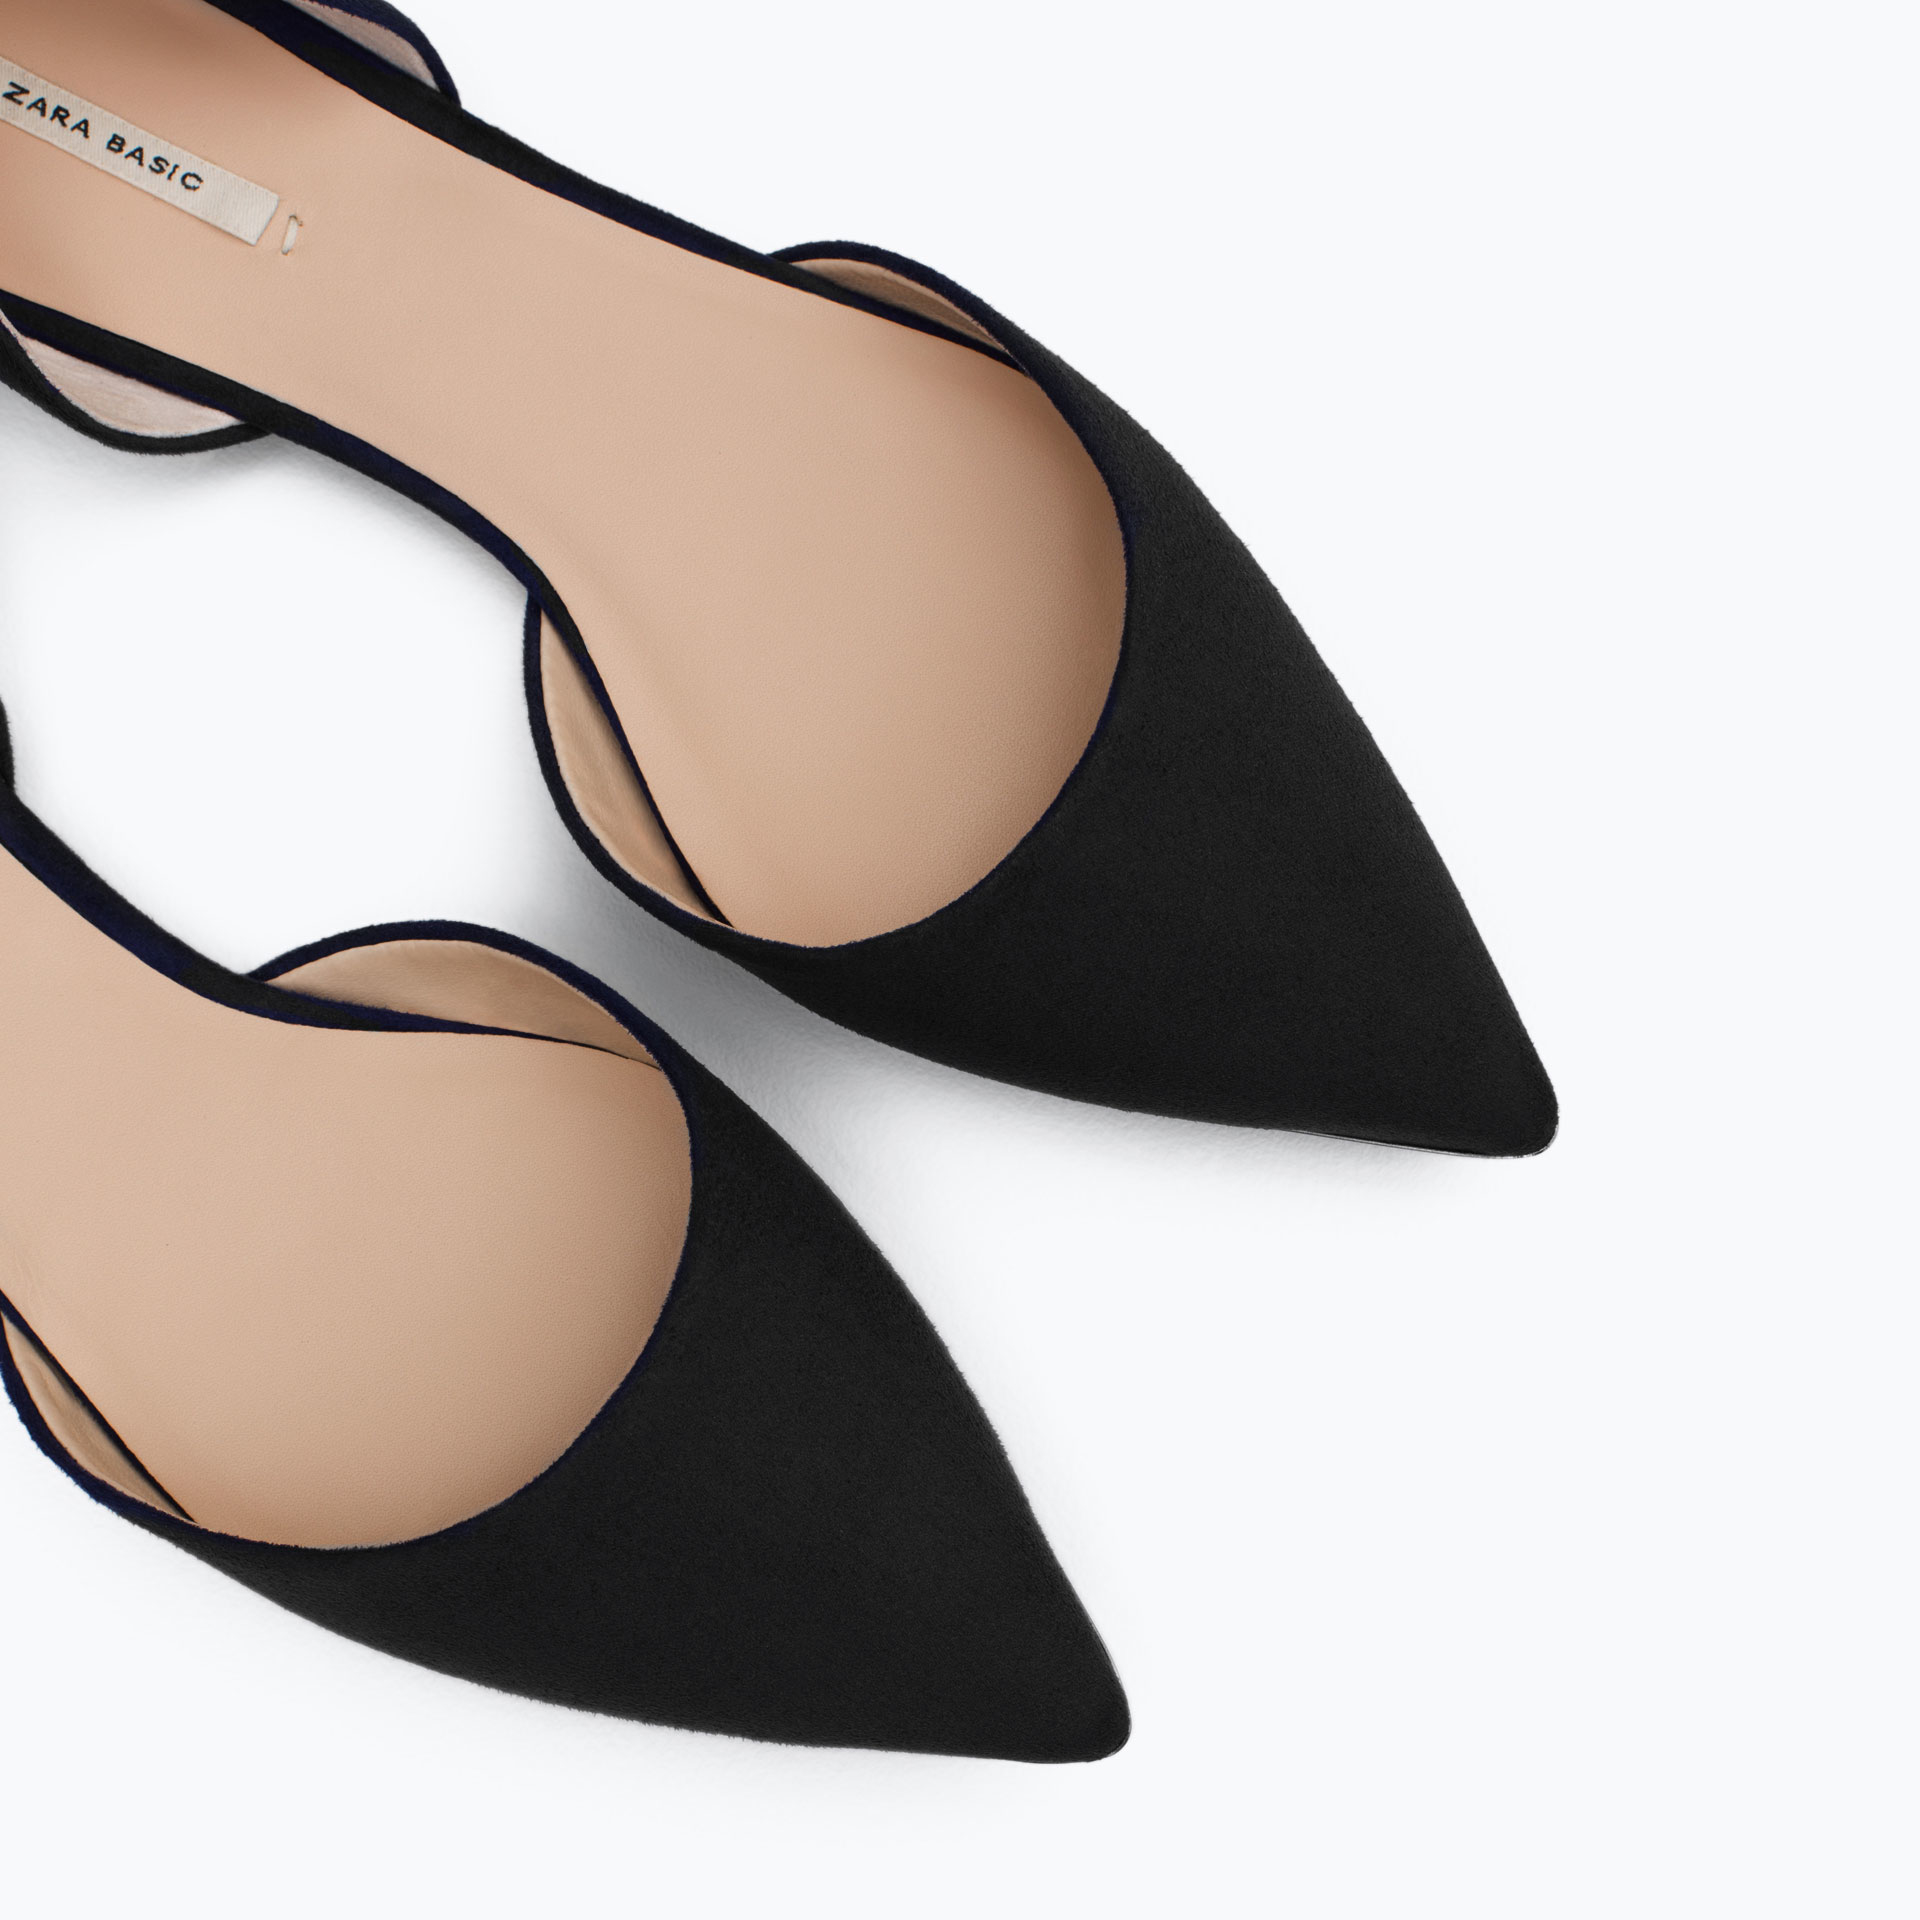 Zara D Orsay Shoes With Ankle Strap Detail   Black